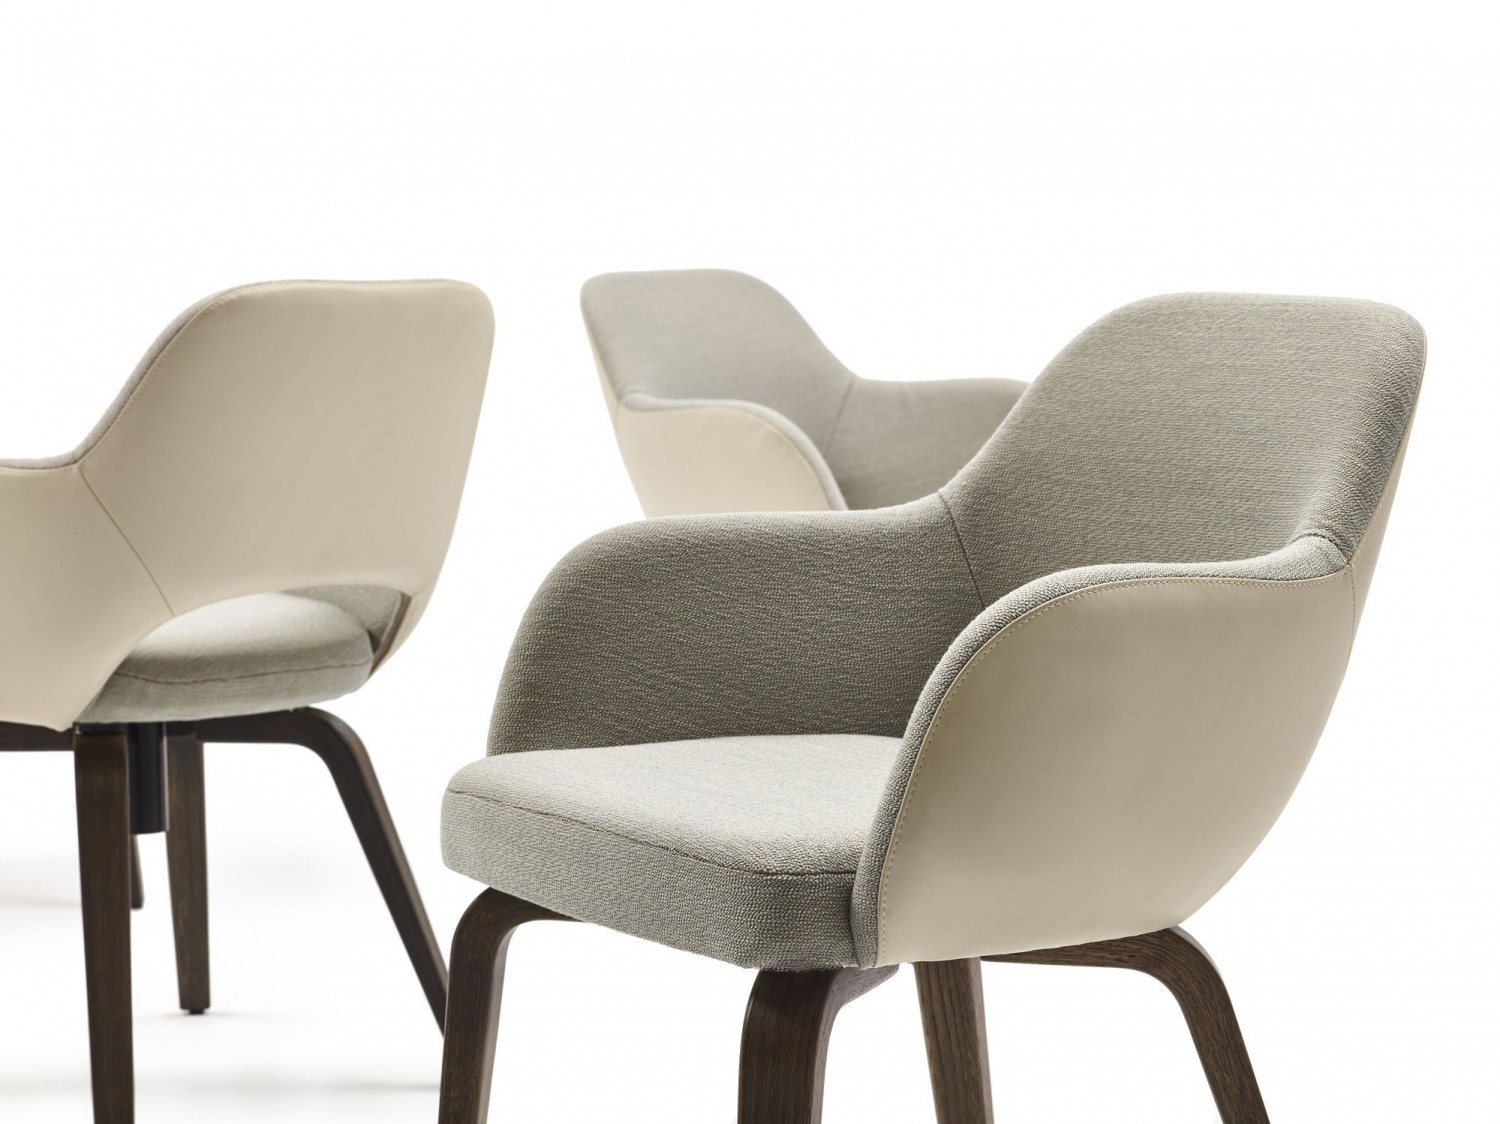 Durlet - messeyne chair - stoel